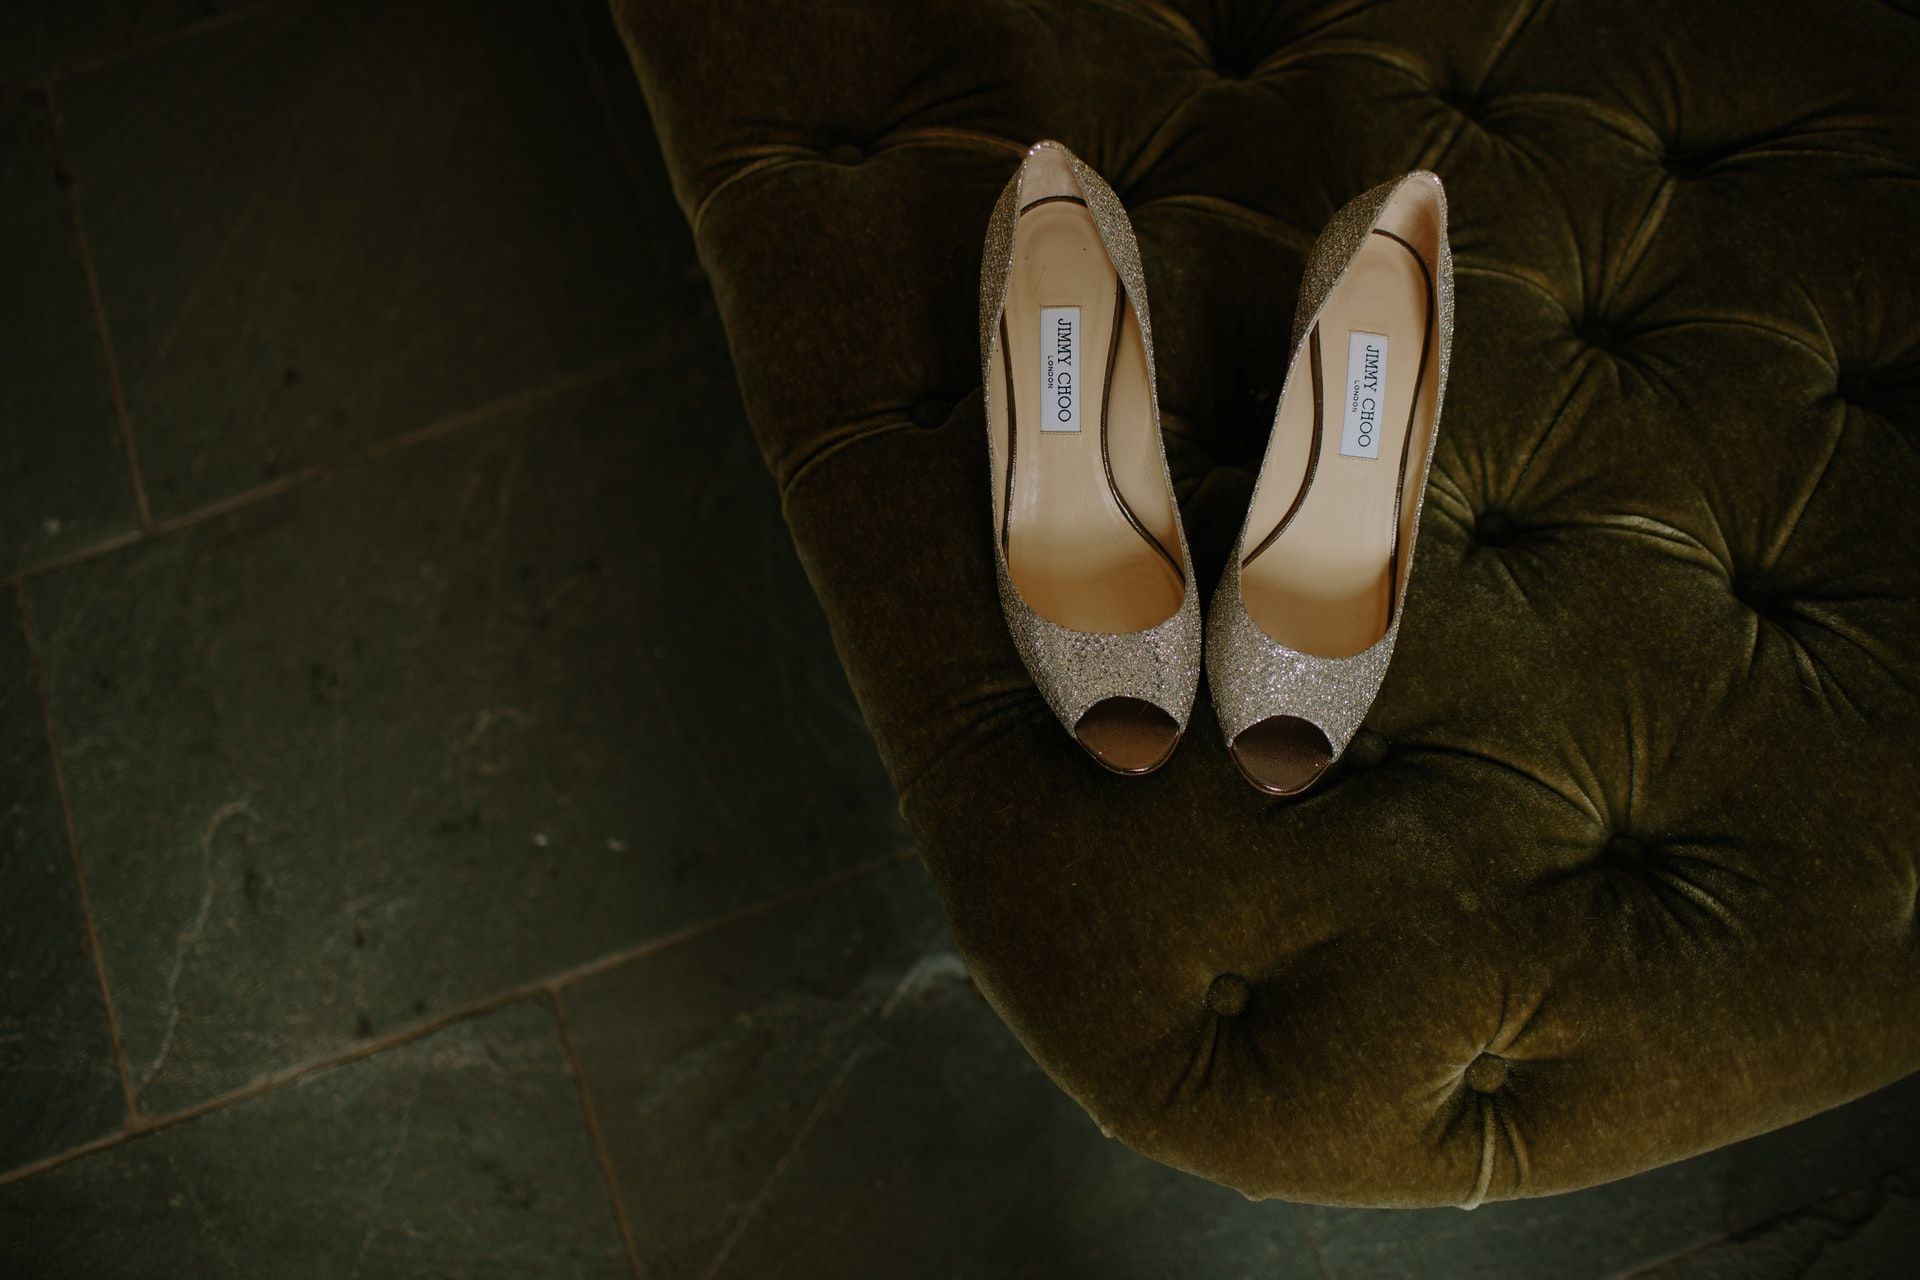 12 Facts About Shoes You Didn't Know – Until Now